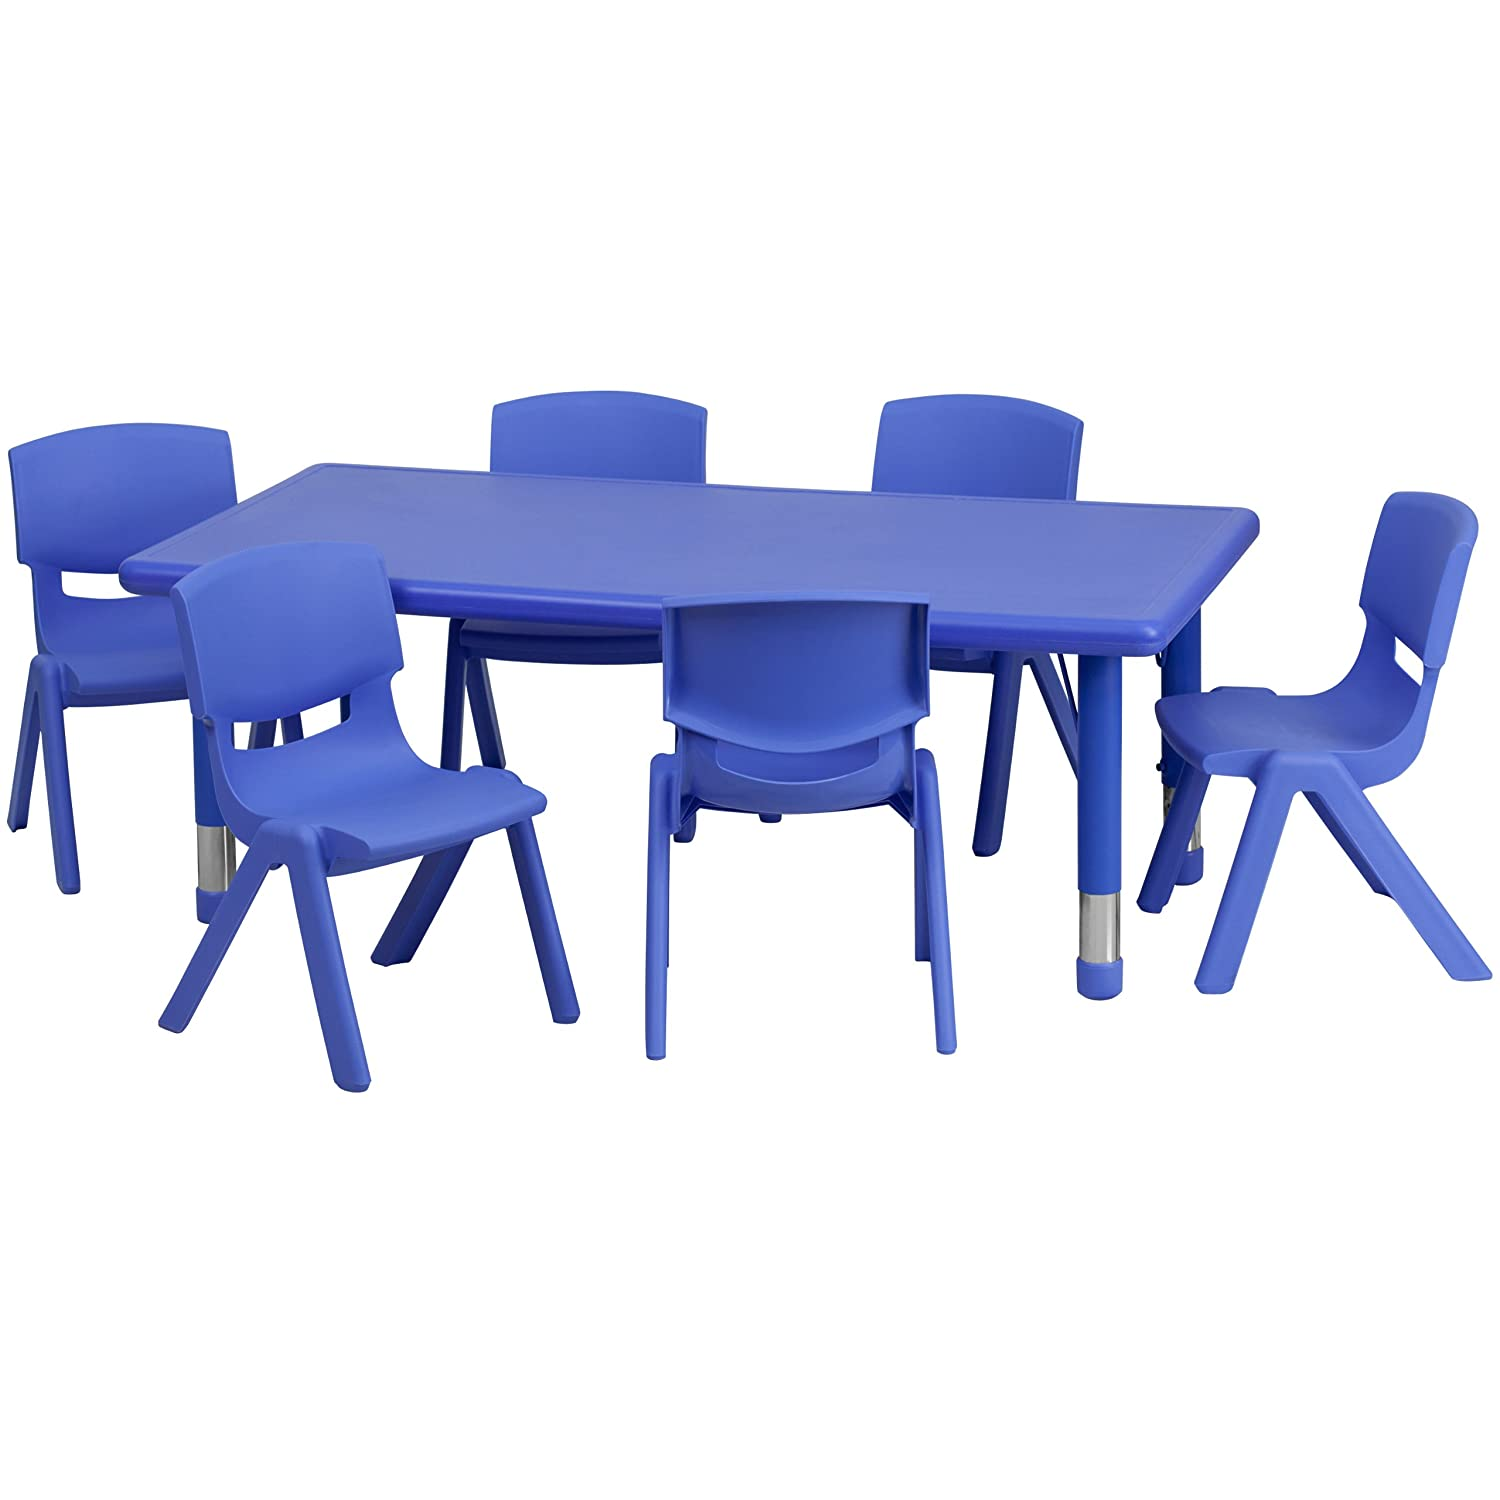 Amazoncom Flash Furniture W X L Rectangular Blue Plastic - Conference room table and chairs set